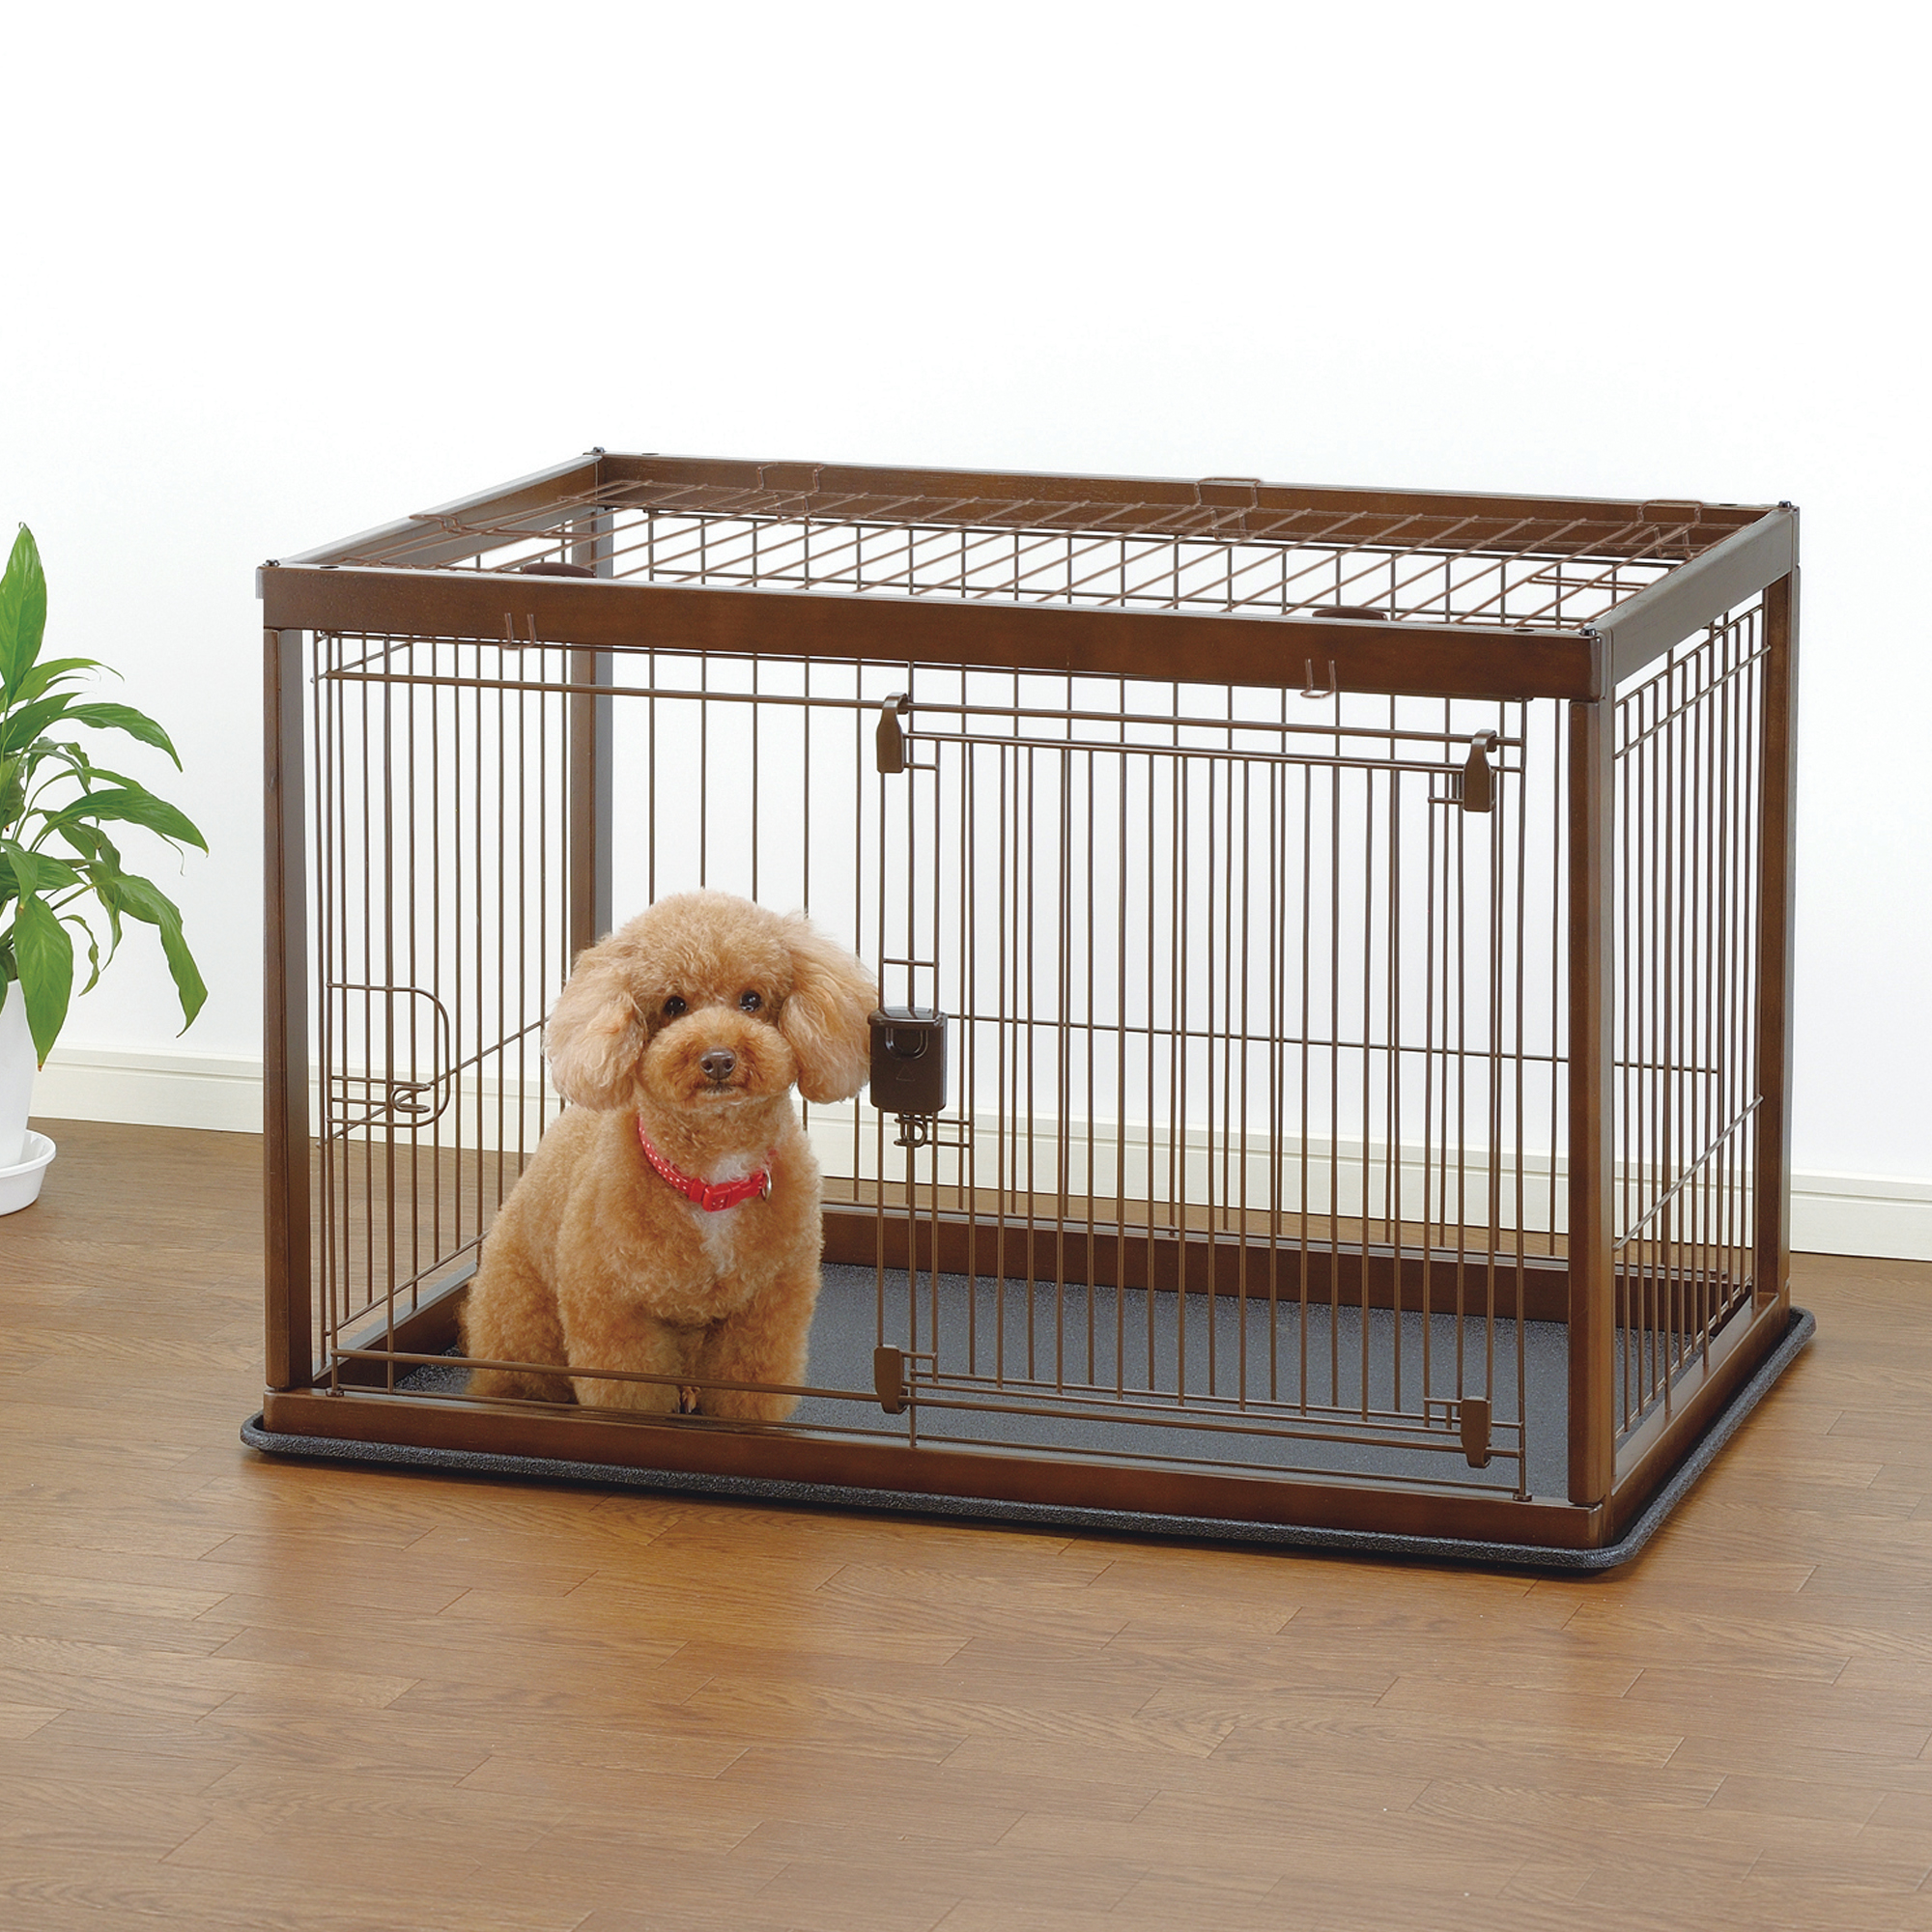 Why to Use a Dog Crate?